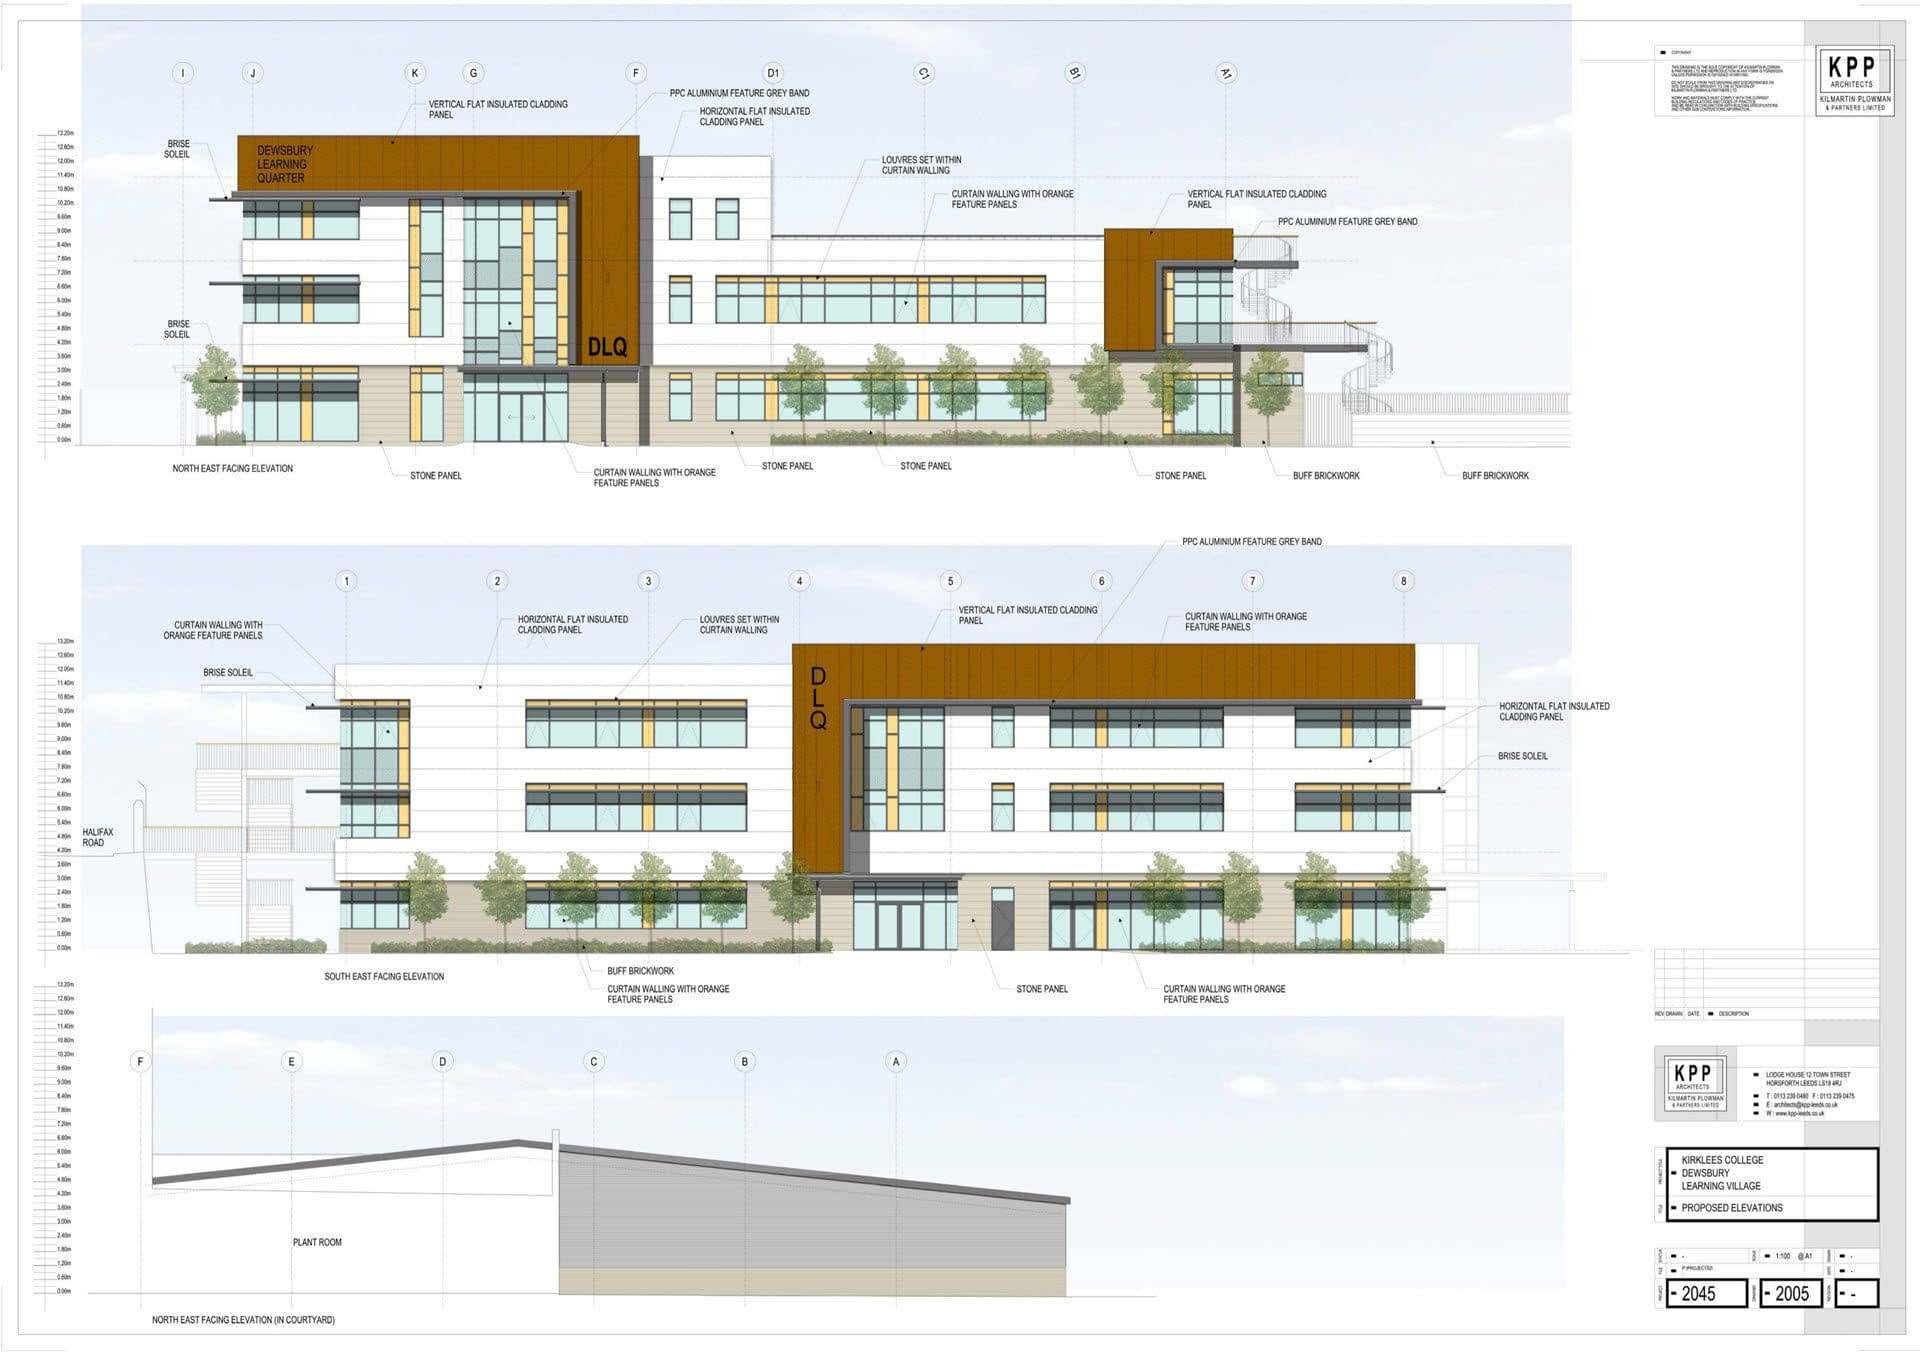 Architects drawing of proposed elevations of student college in Dewsbury